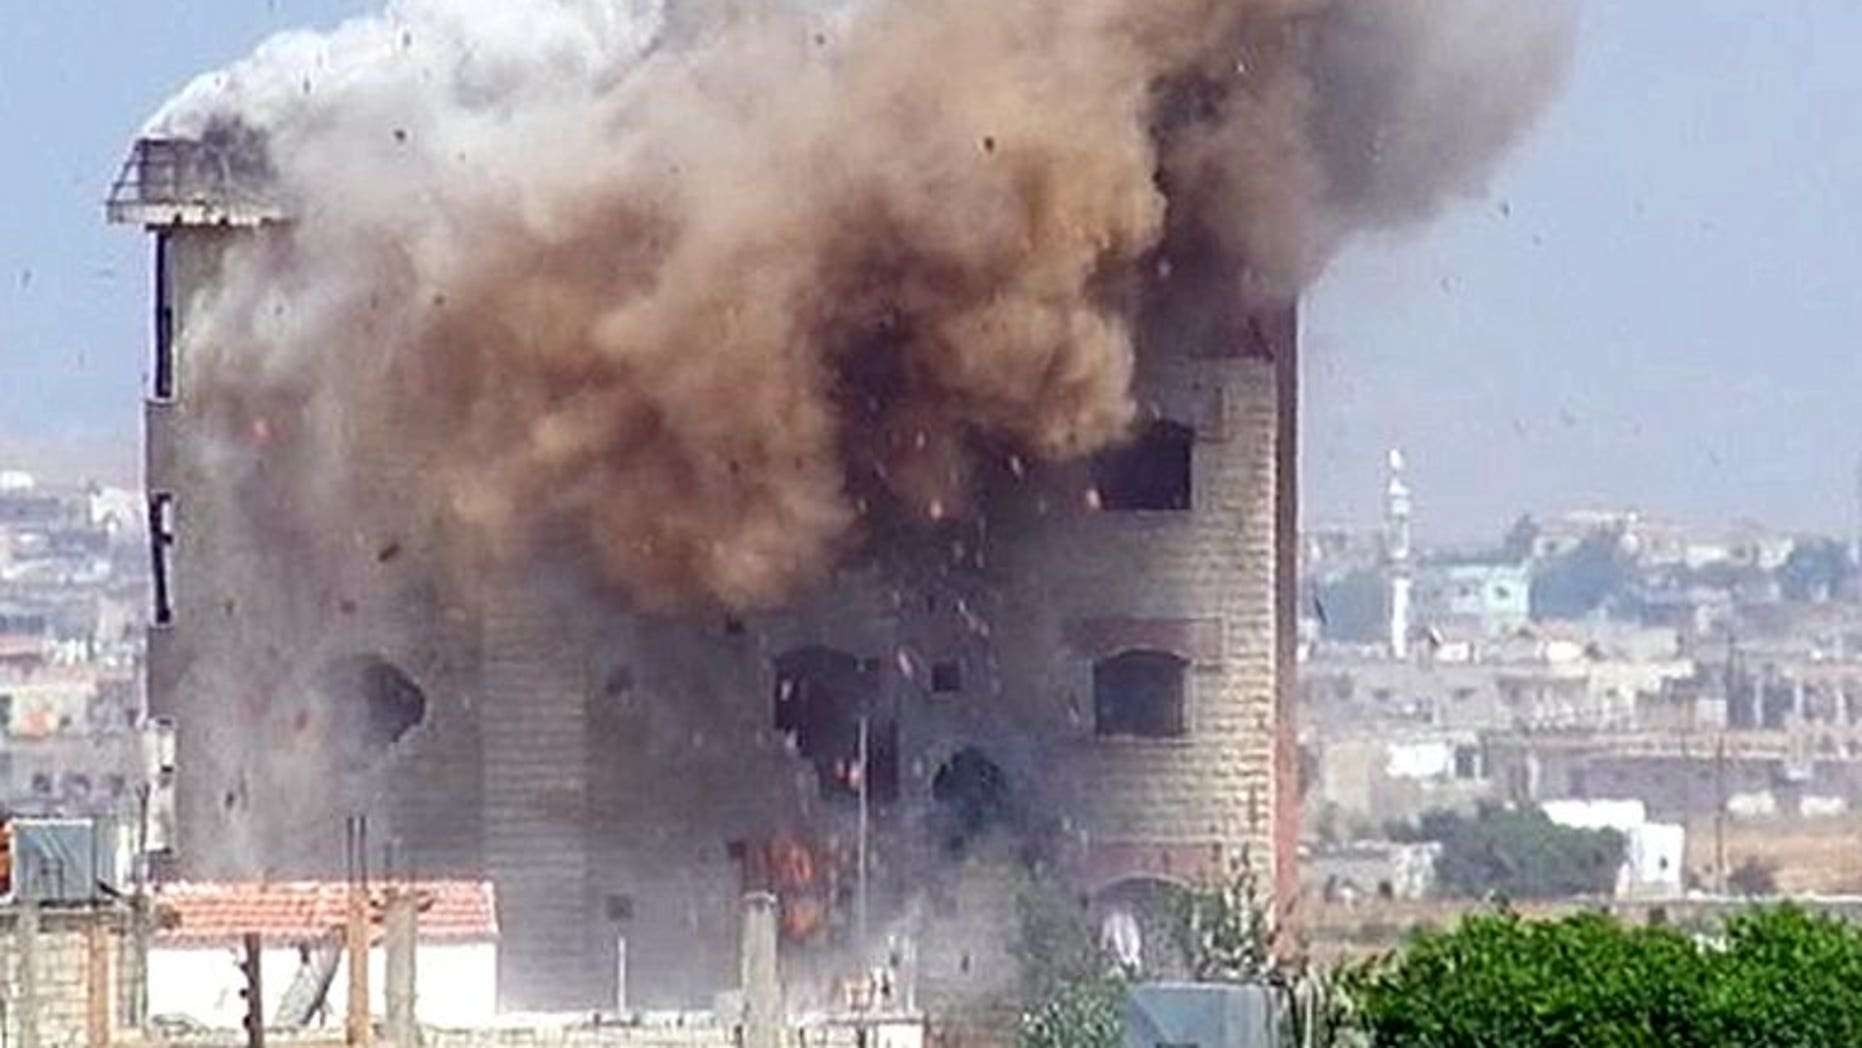 A picture released on June 2 shows smokes rising as a mortar shell hits a building in al-Hula in Homs province. Mortar fire by the Syrian army on the Mleha district southeast of Damascus killed at least 14 civilians, four of them children, a watchdog said on Friday.